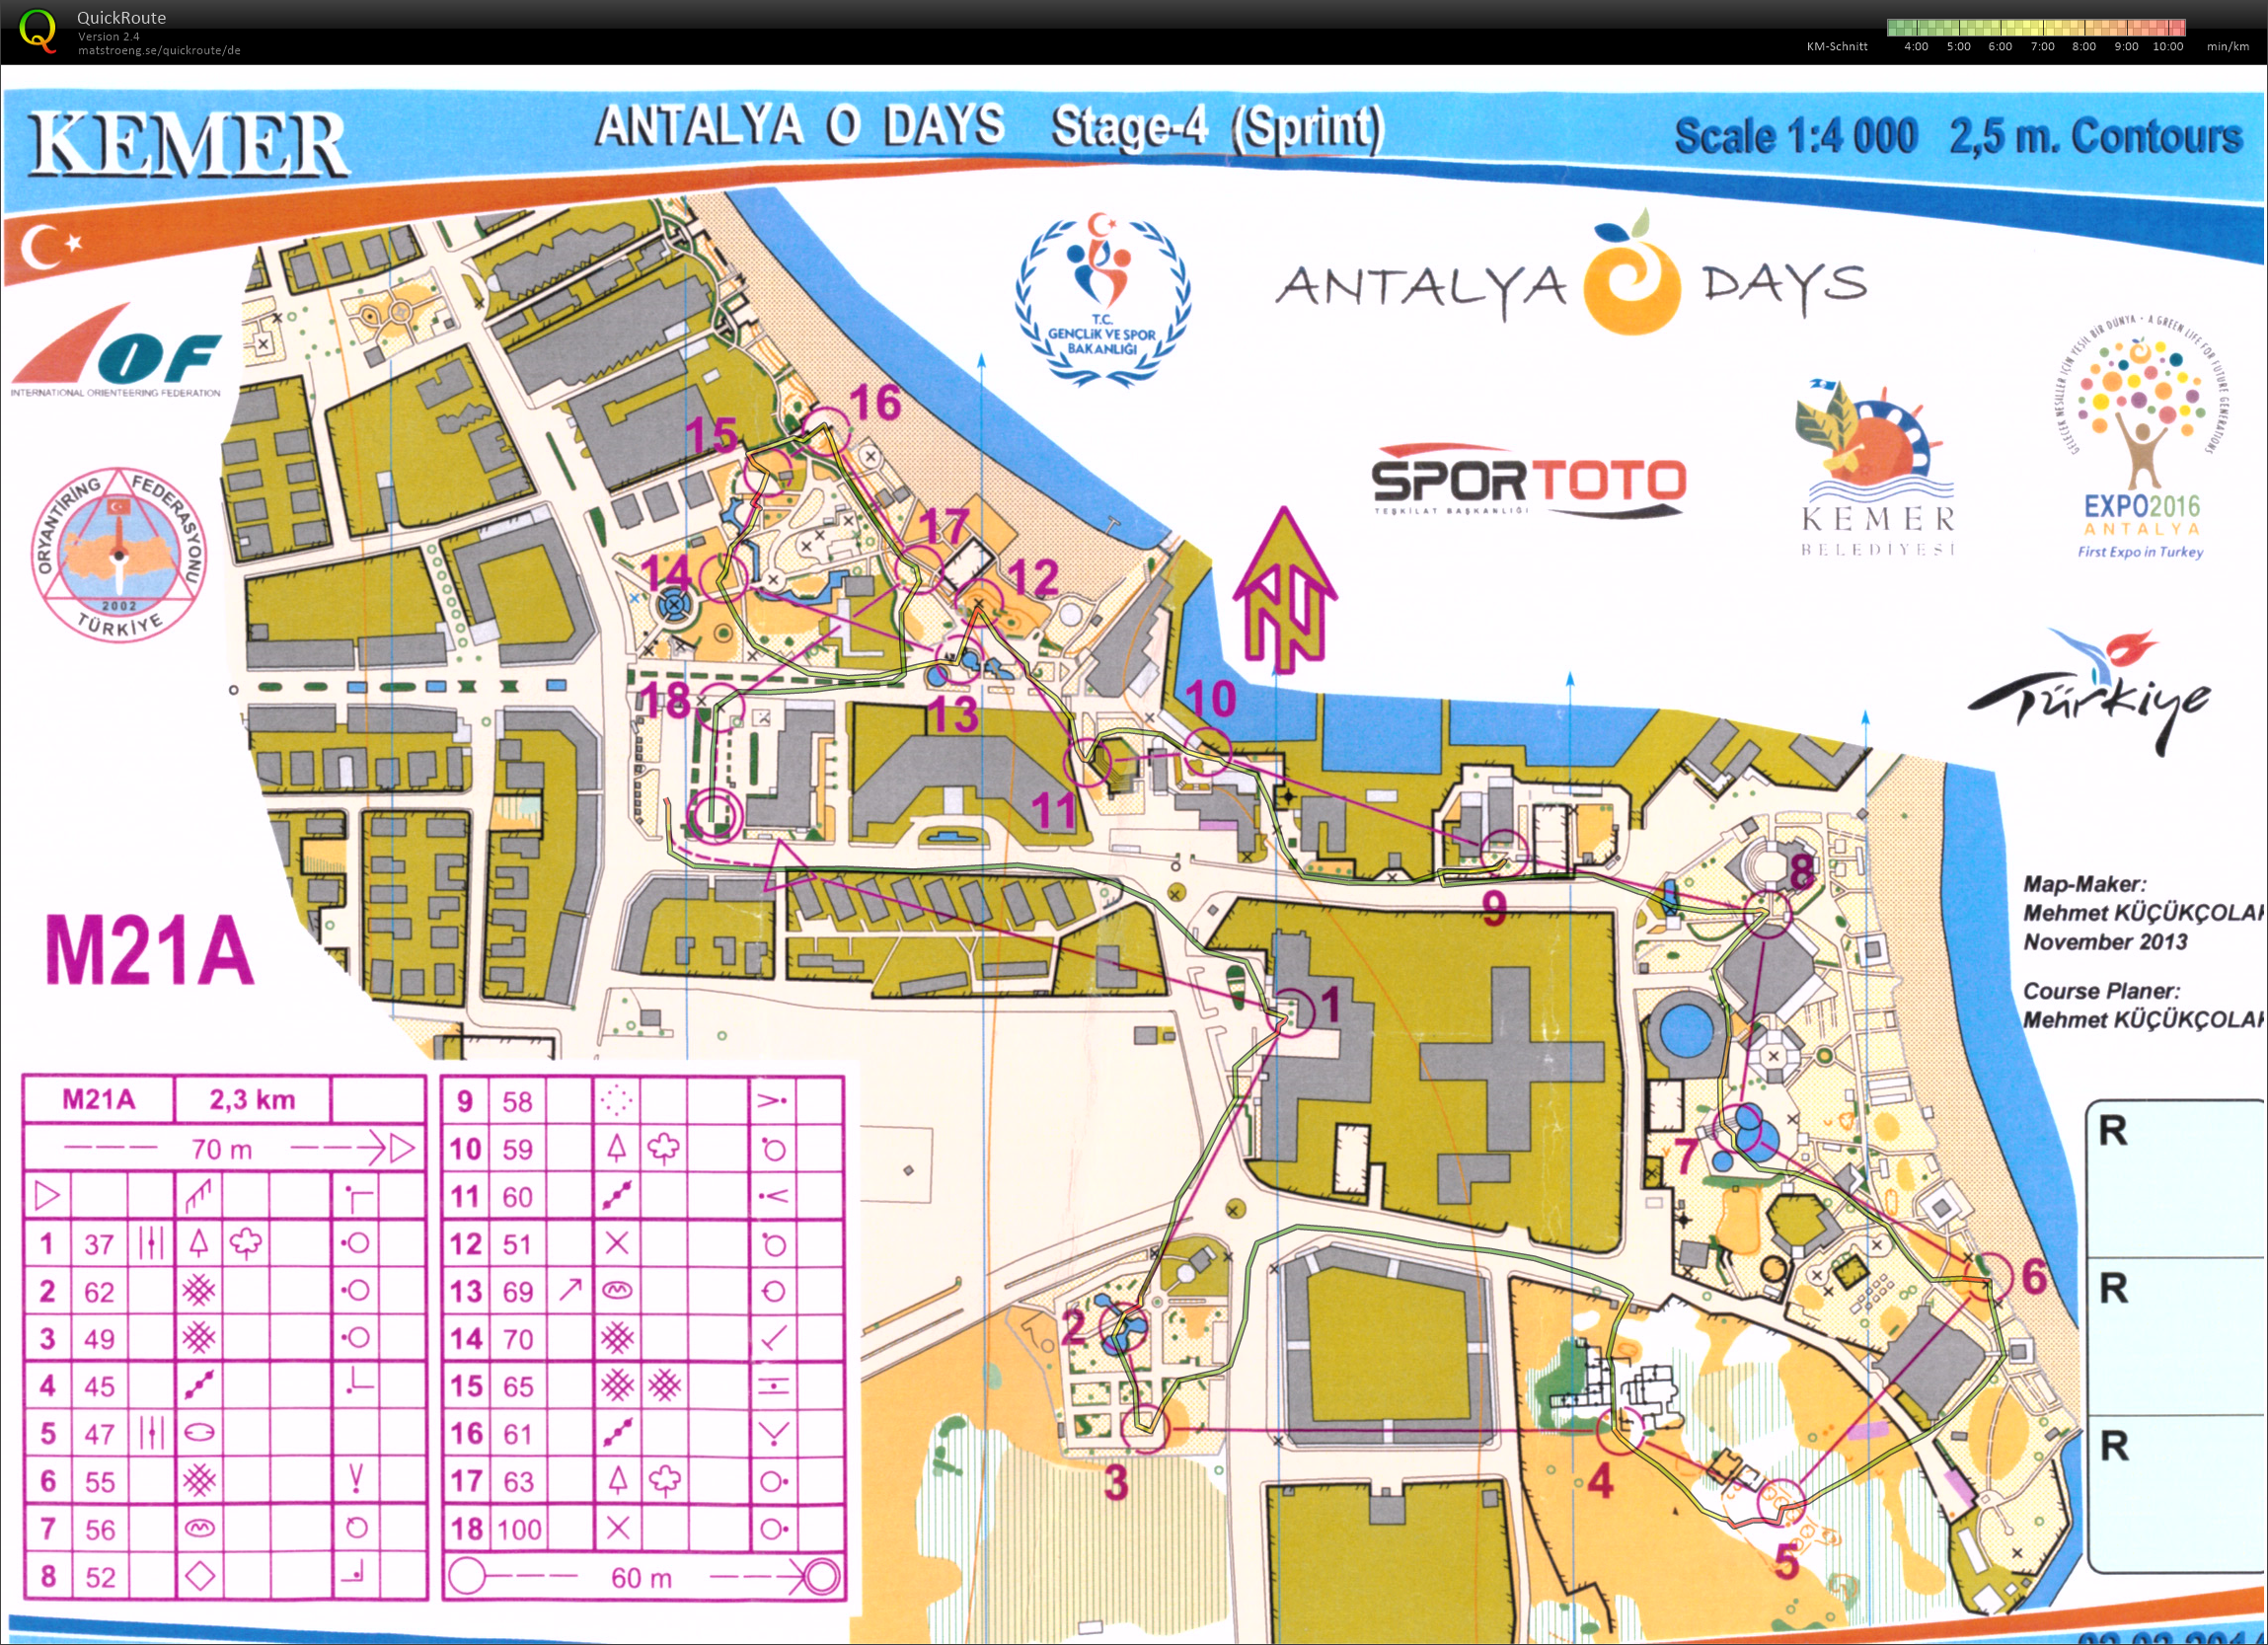 Antalya O Days - Sprint (02.03.2014)